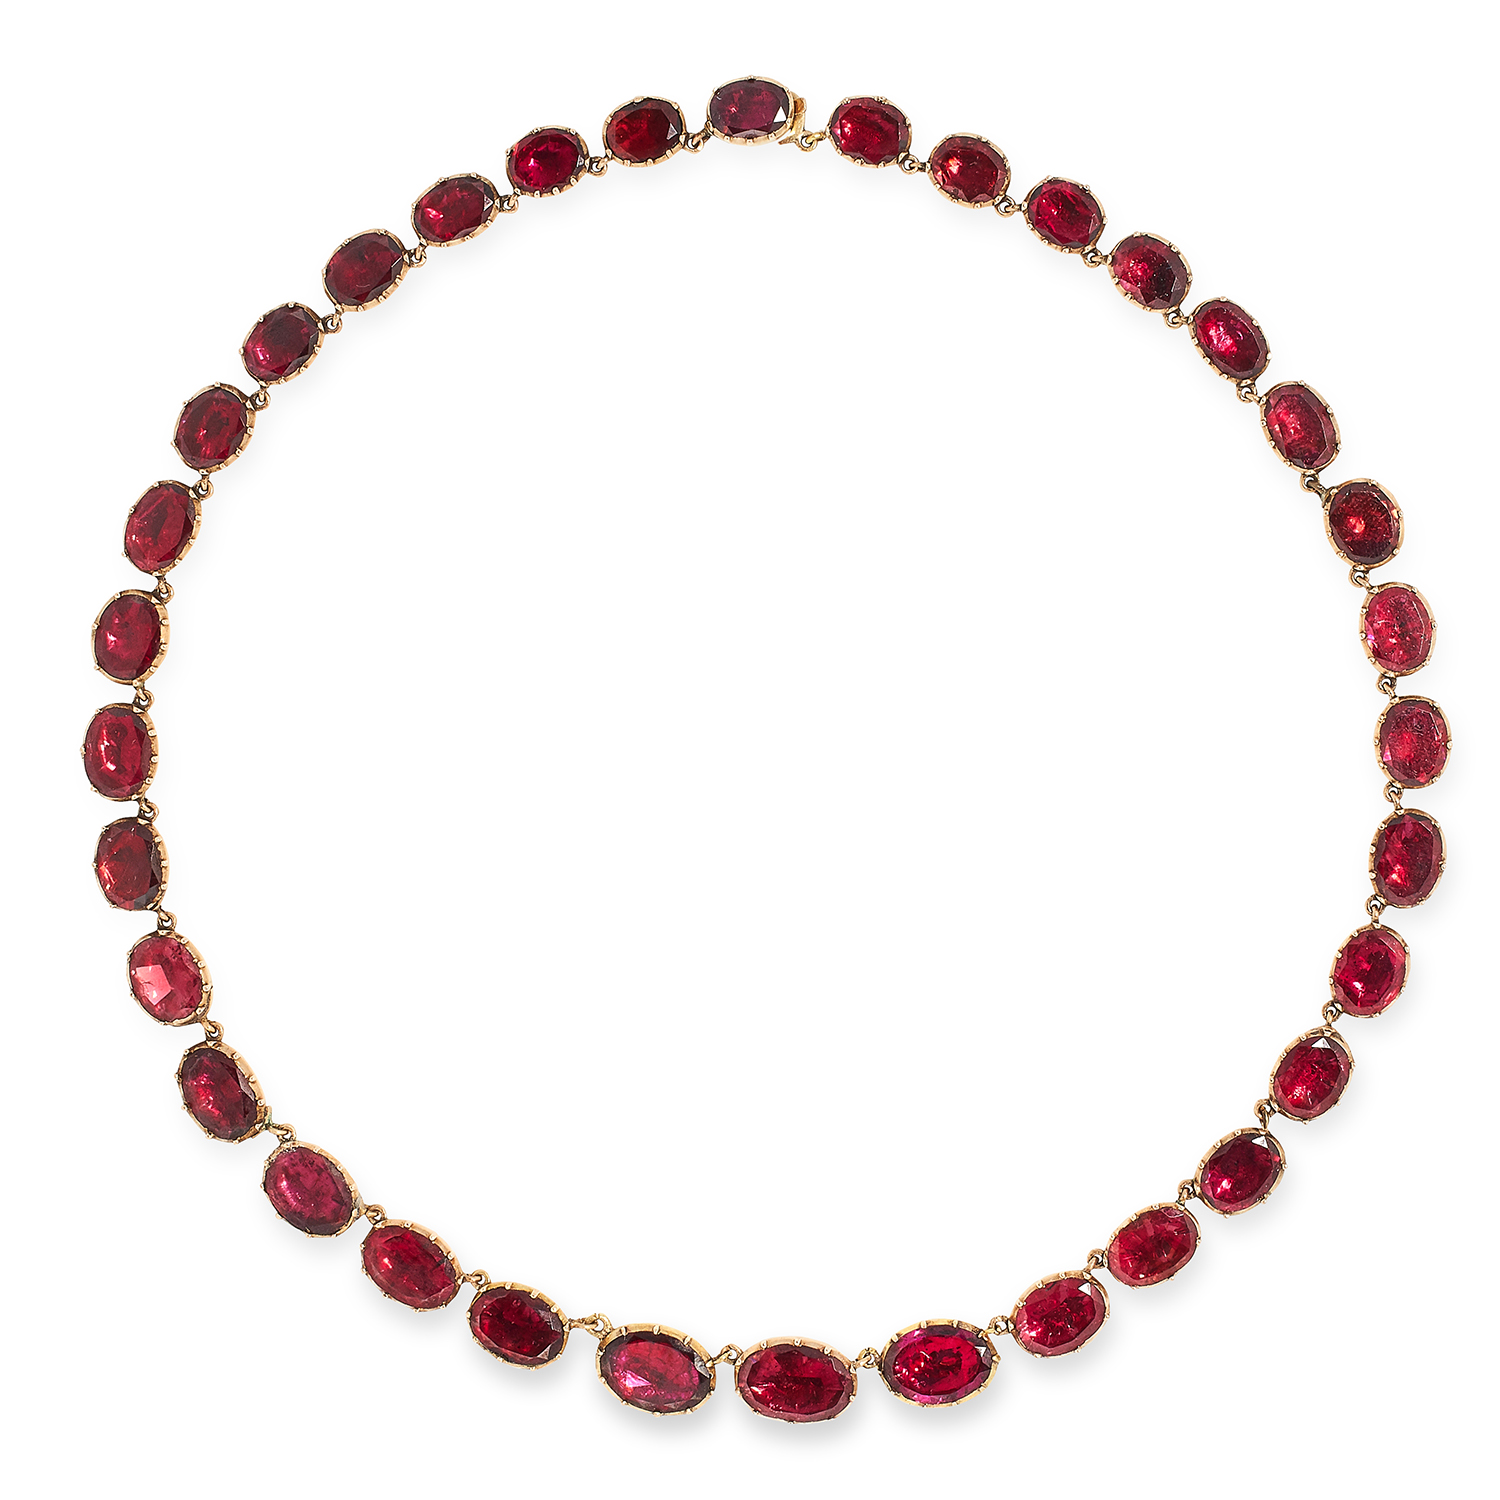 ANTIQUE VICTORIAN GARNET RIVIERA NECKLACE set with oval cut garnets, 39cm, 28.6g.